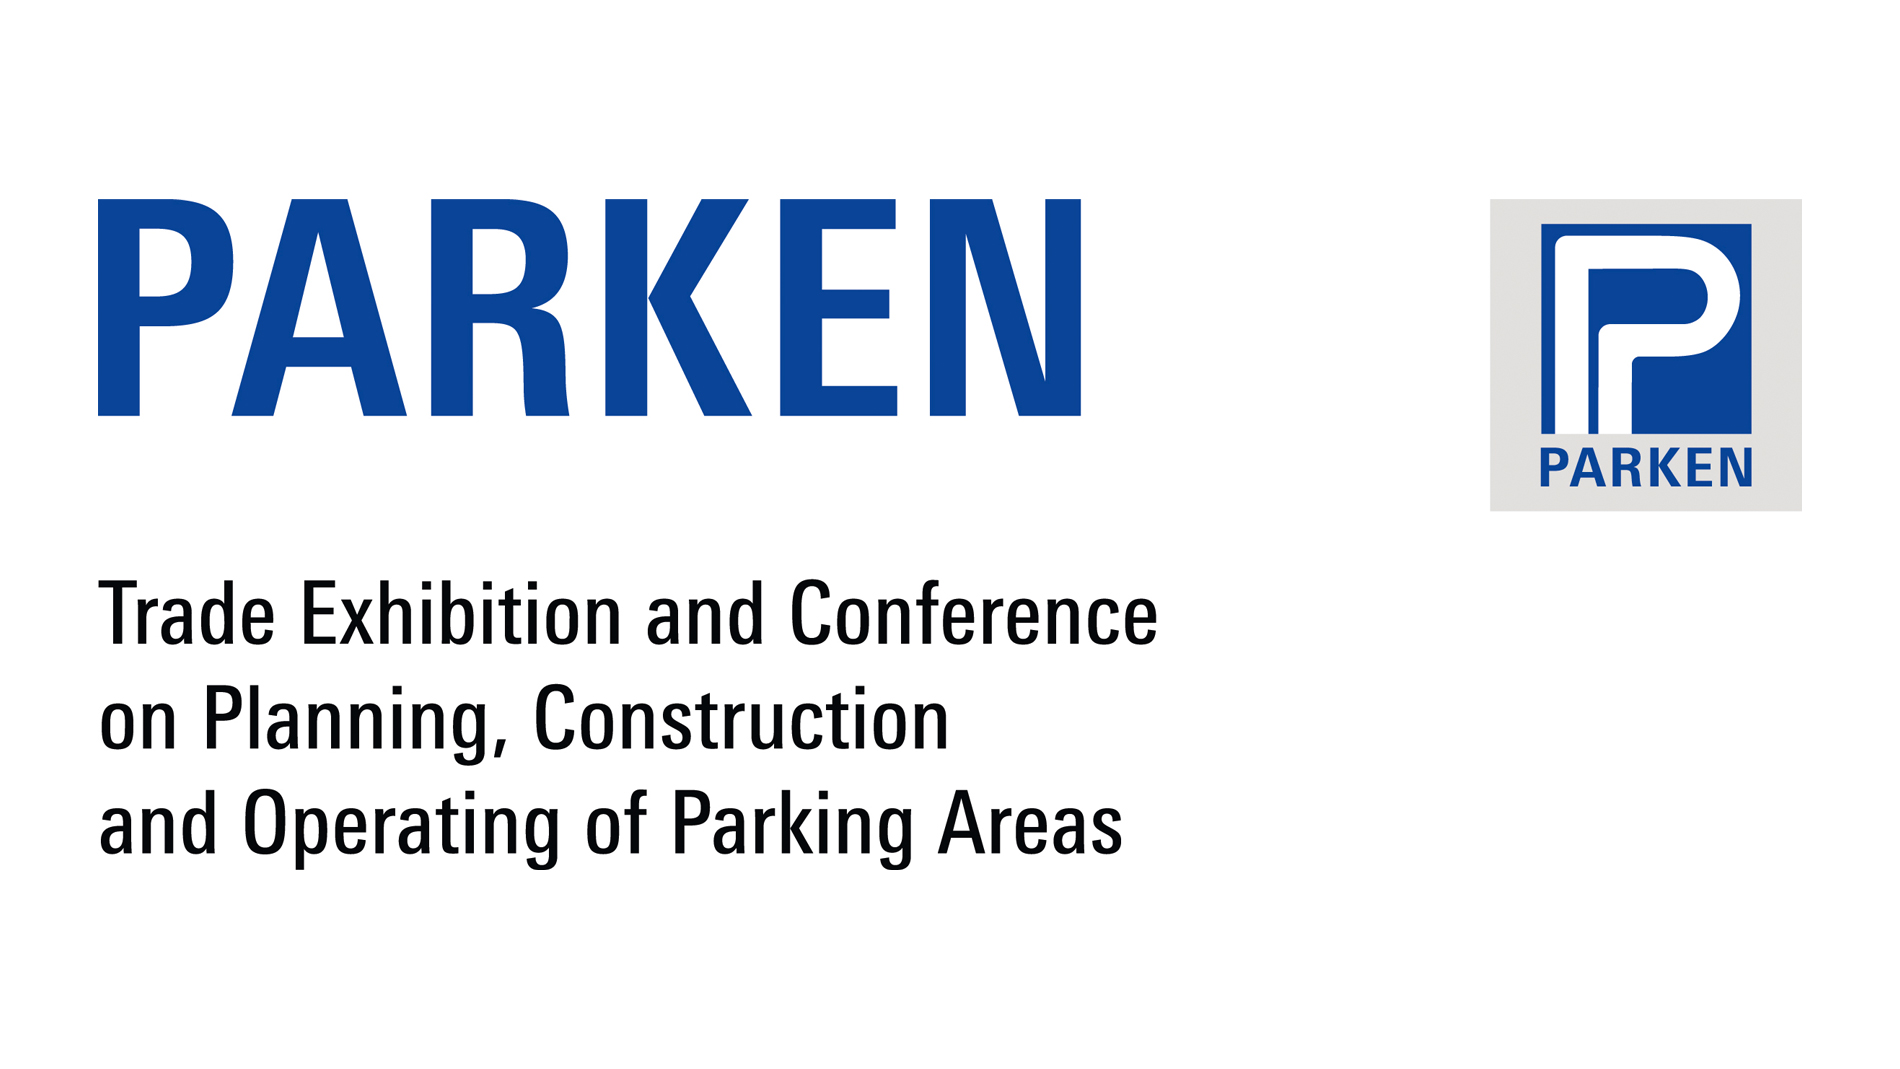 PARKEN 2021 logo package shot version, English